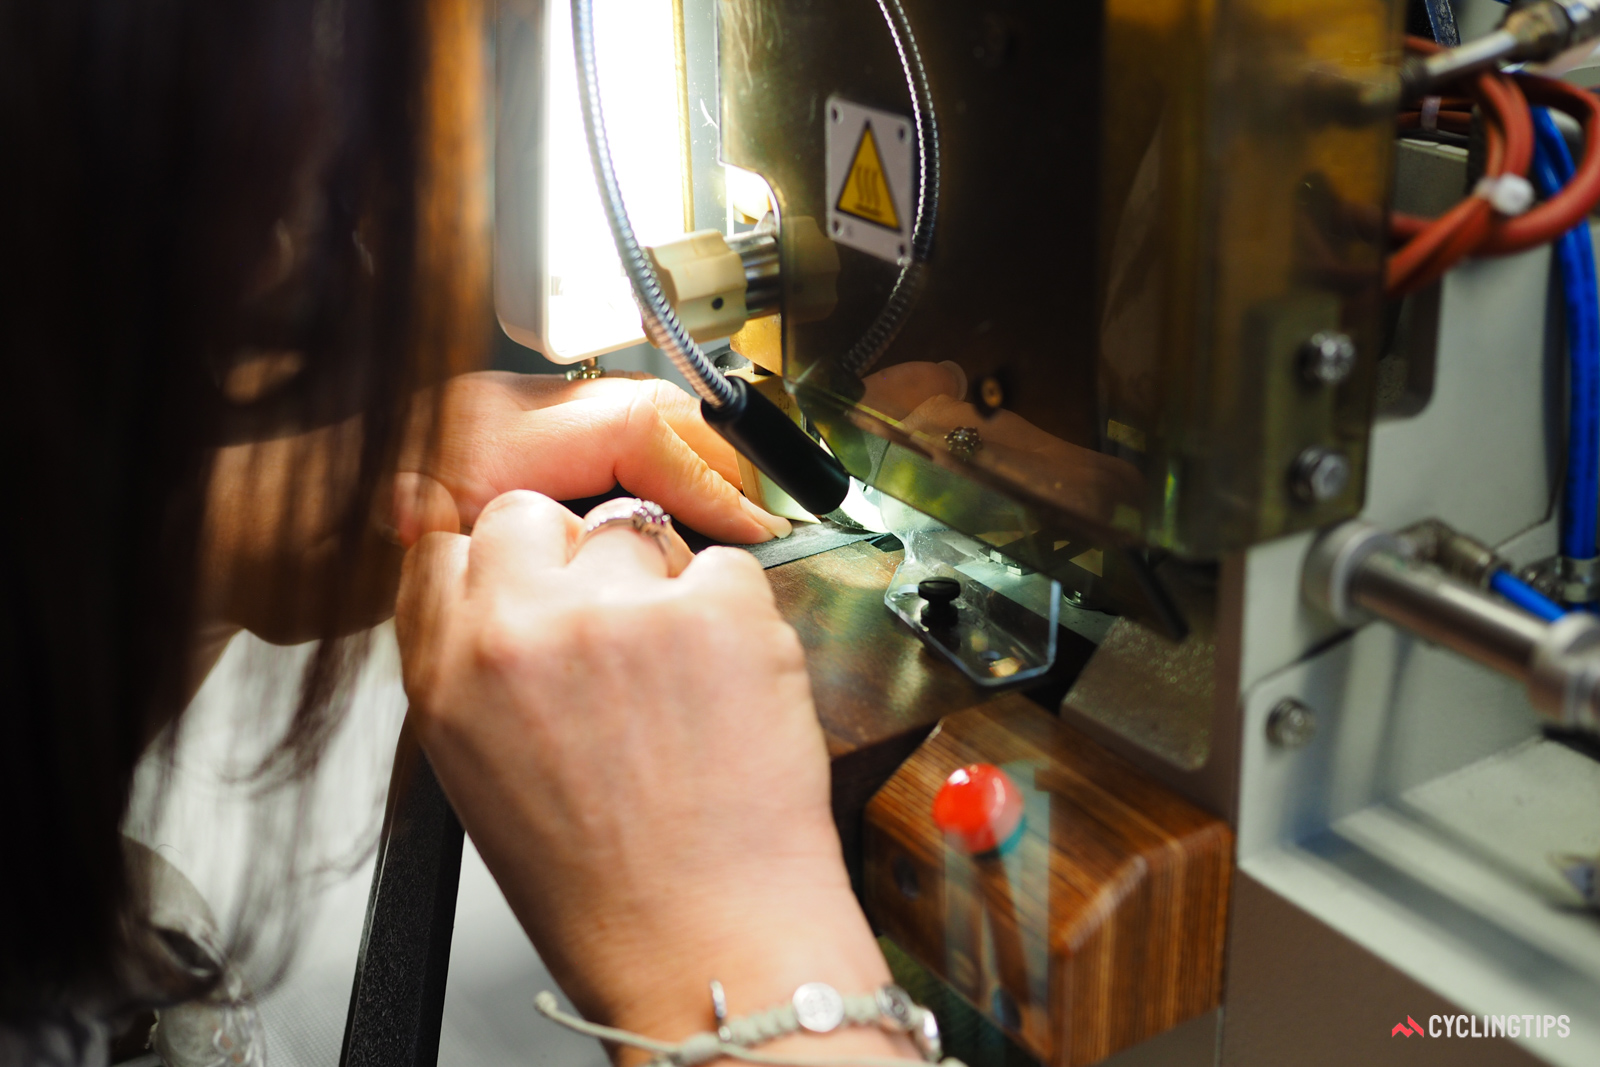 Glue is applied to bonded saddle cover sections with a machine, but the material is guided by hand.